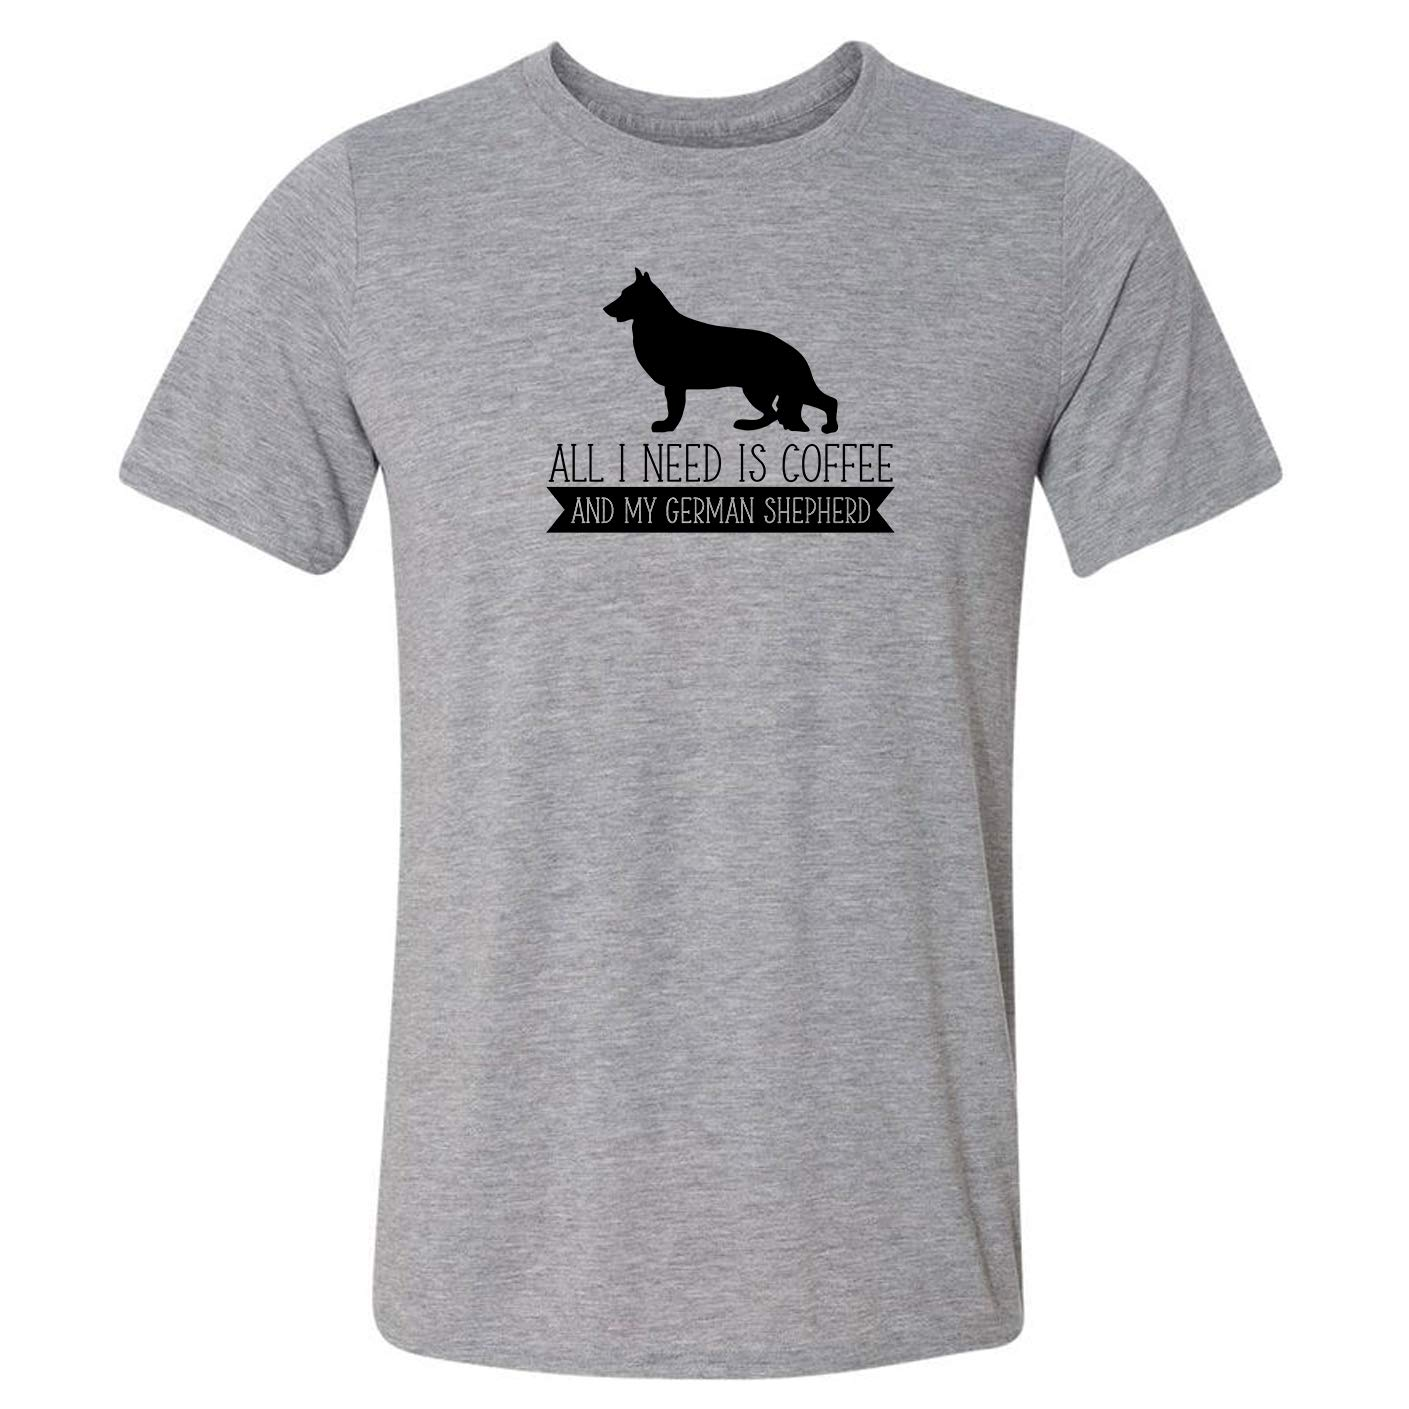 All I Need National products is Coffee T-Shirt and Louisville-Jefferson County Mall My Shepherd German